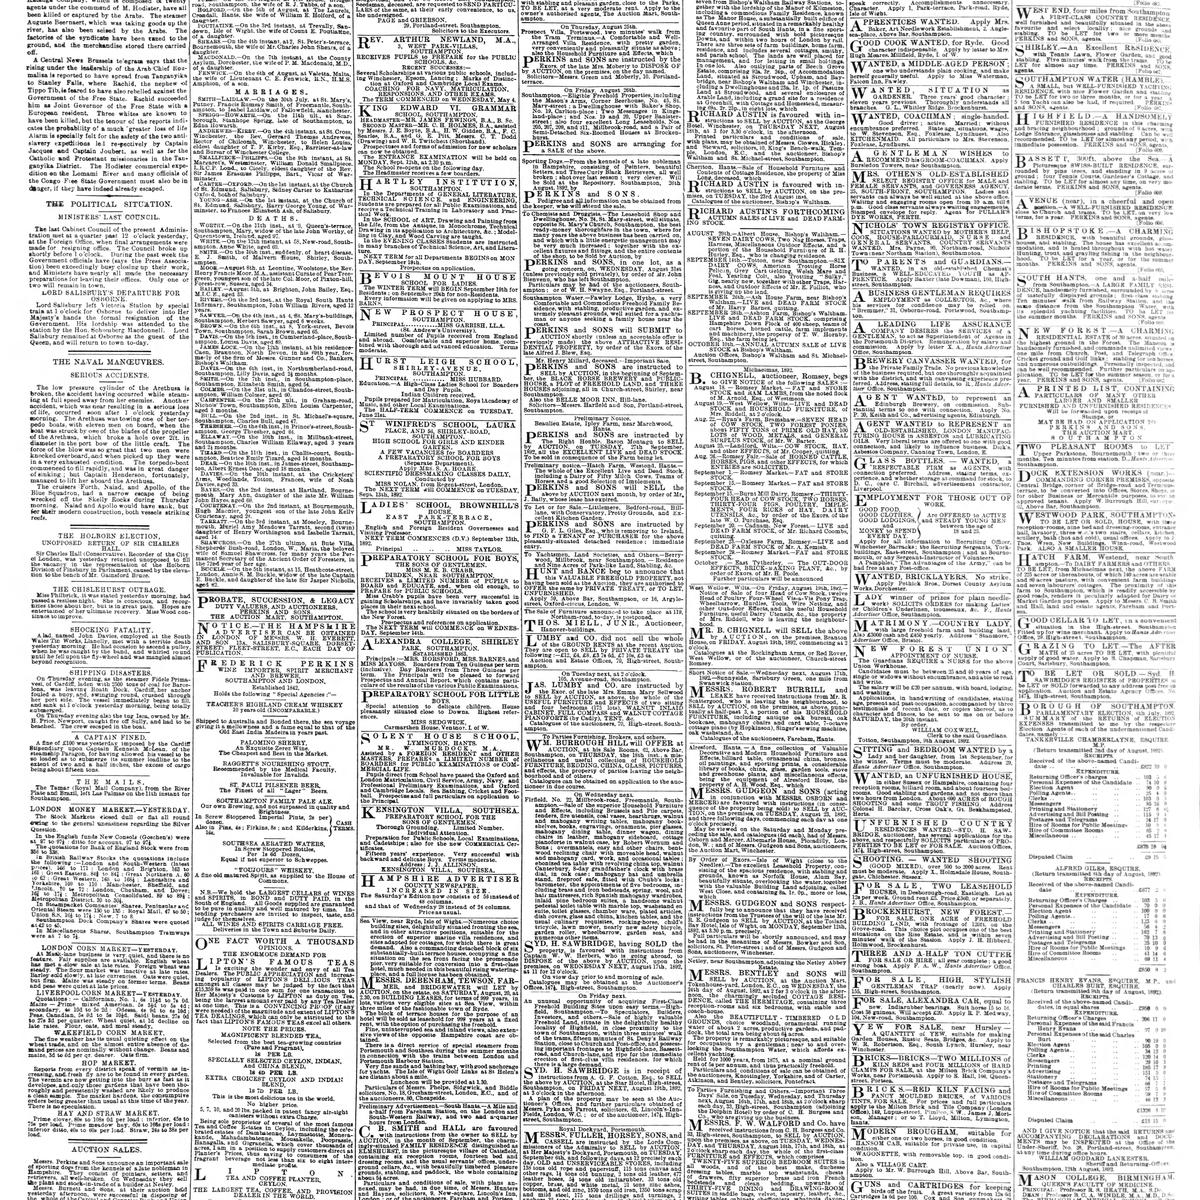 The Hampshire Advertiser, 1892-08-13, page 4